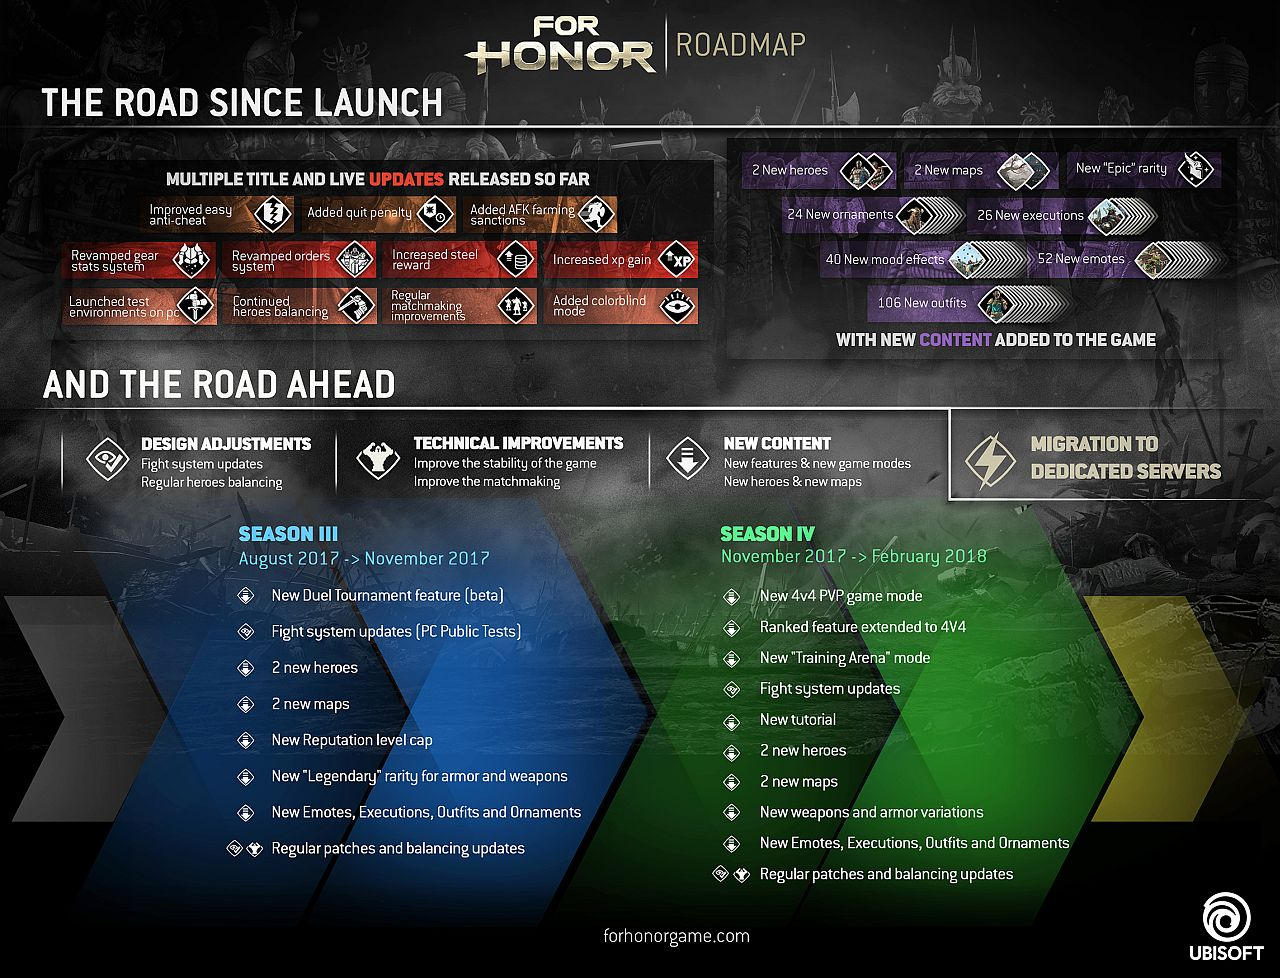 For Honor is getting dedicated servers and more